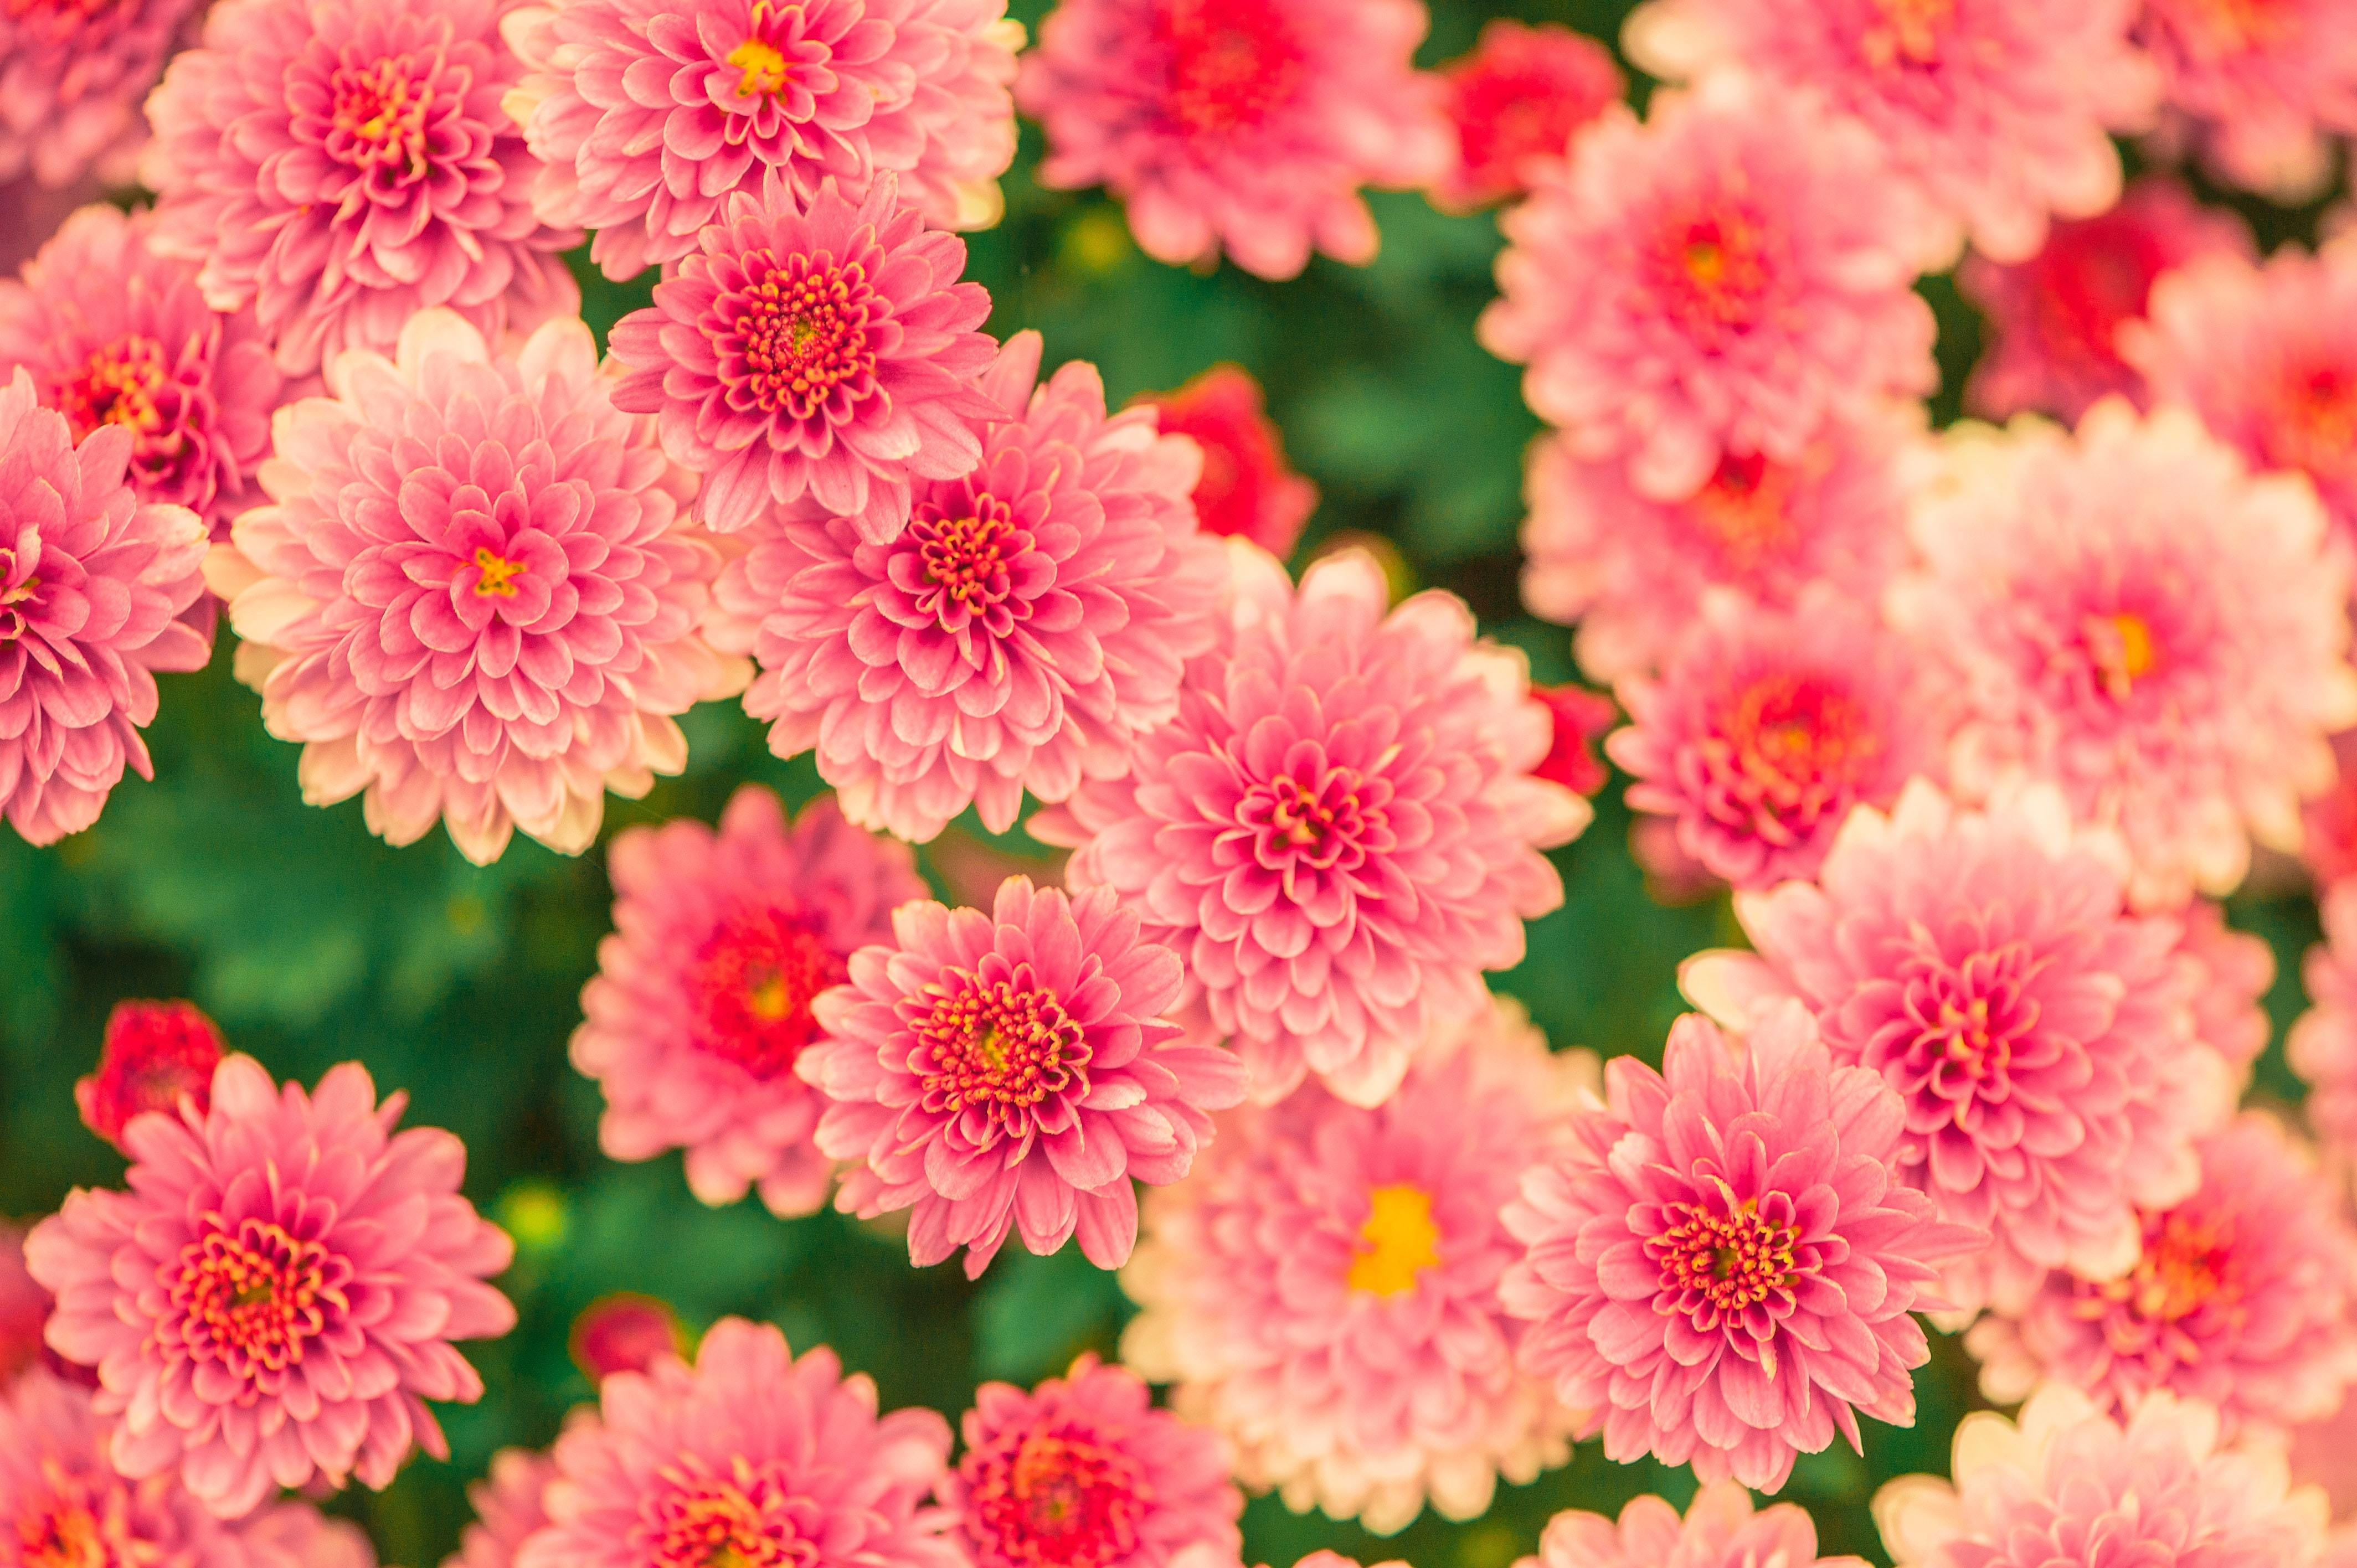 Pink and Yellow Petaled Flower Photo, Garden, Summer, Spring, Pretty, HQ Photo